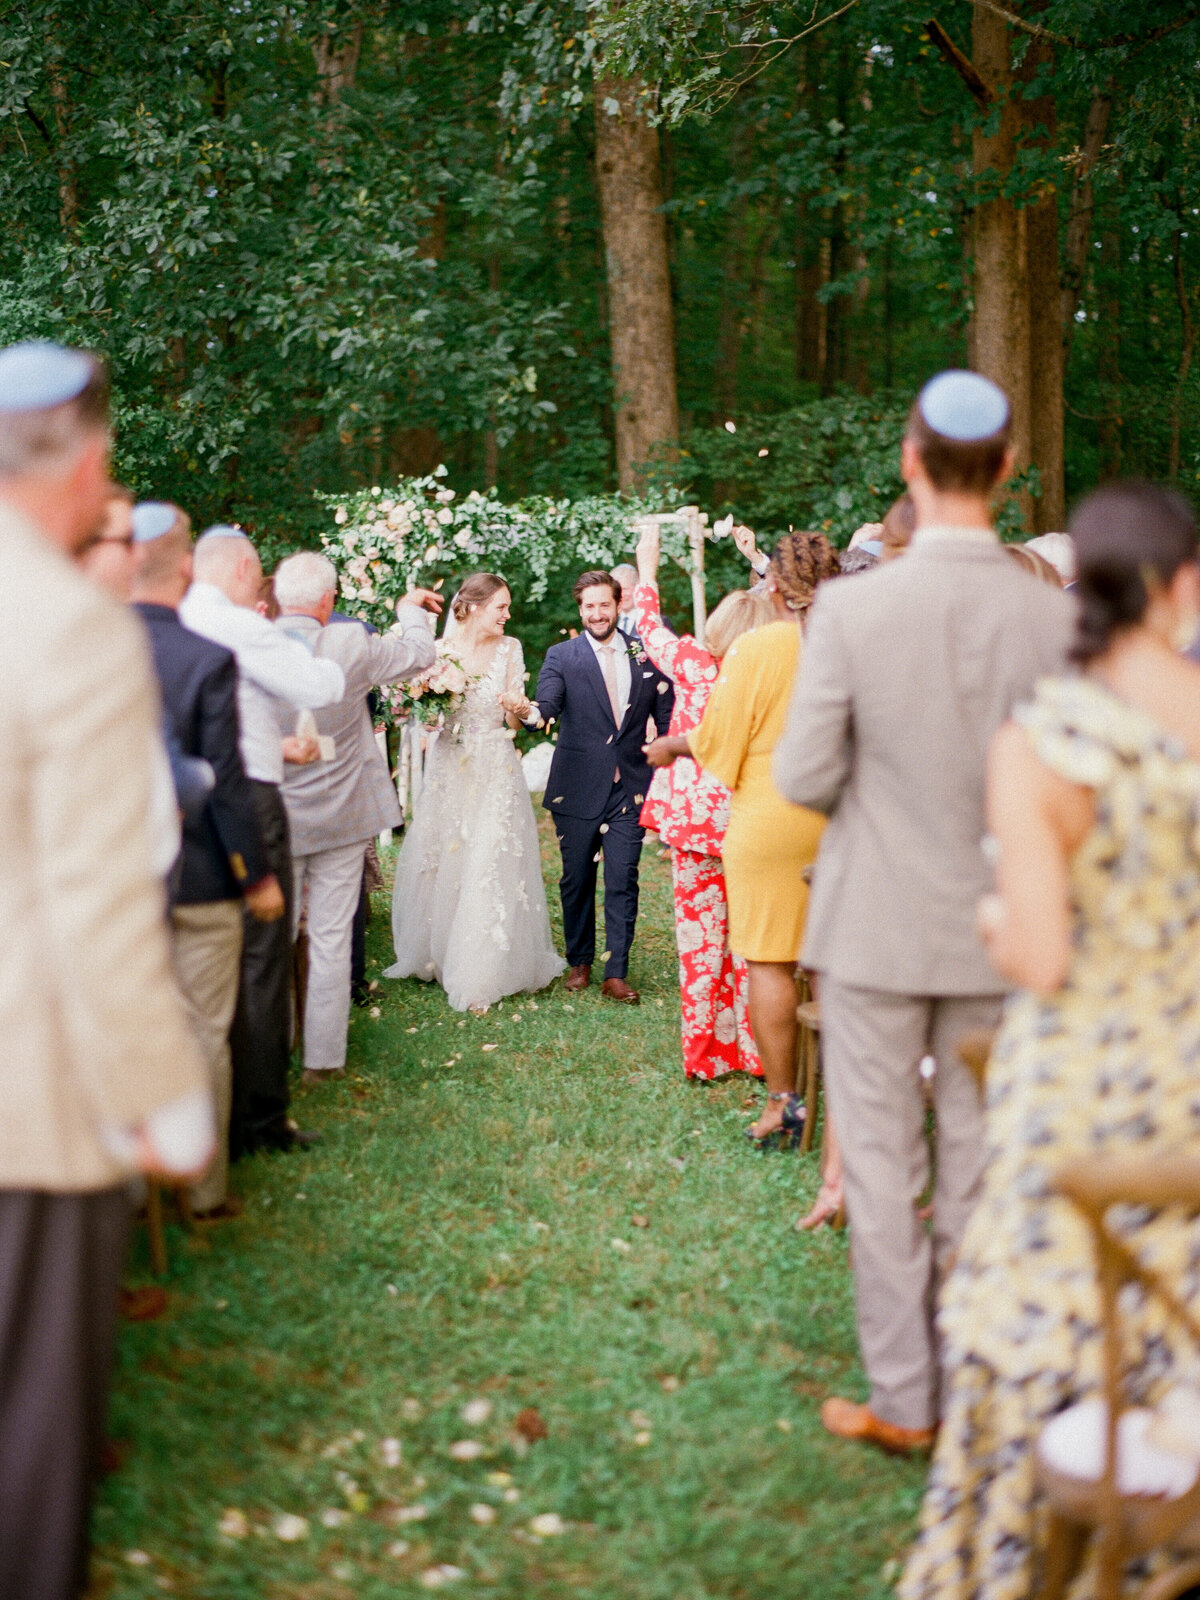 Wedding Photography at The Meadows in Raleigh, NC 27